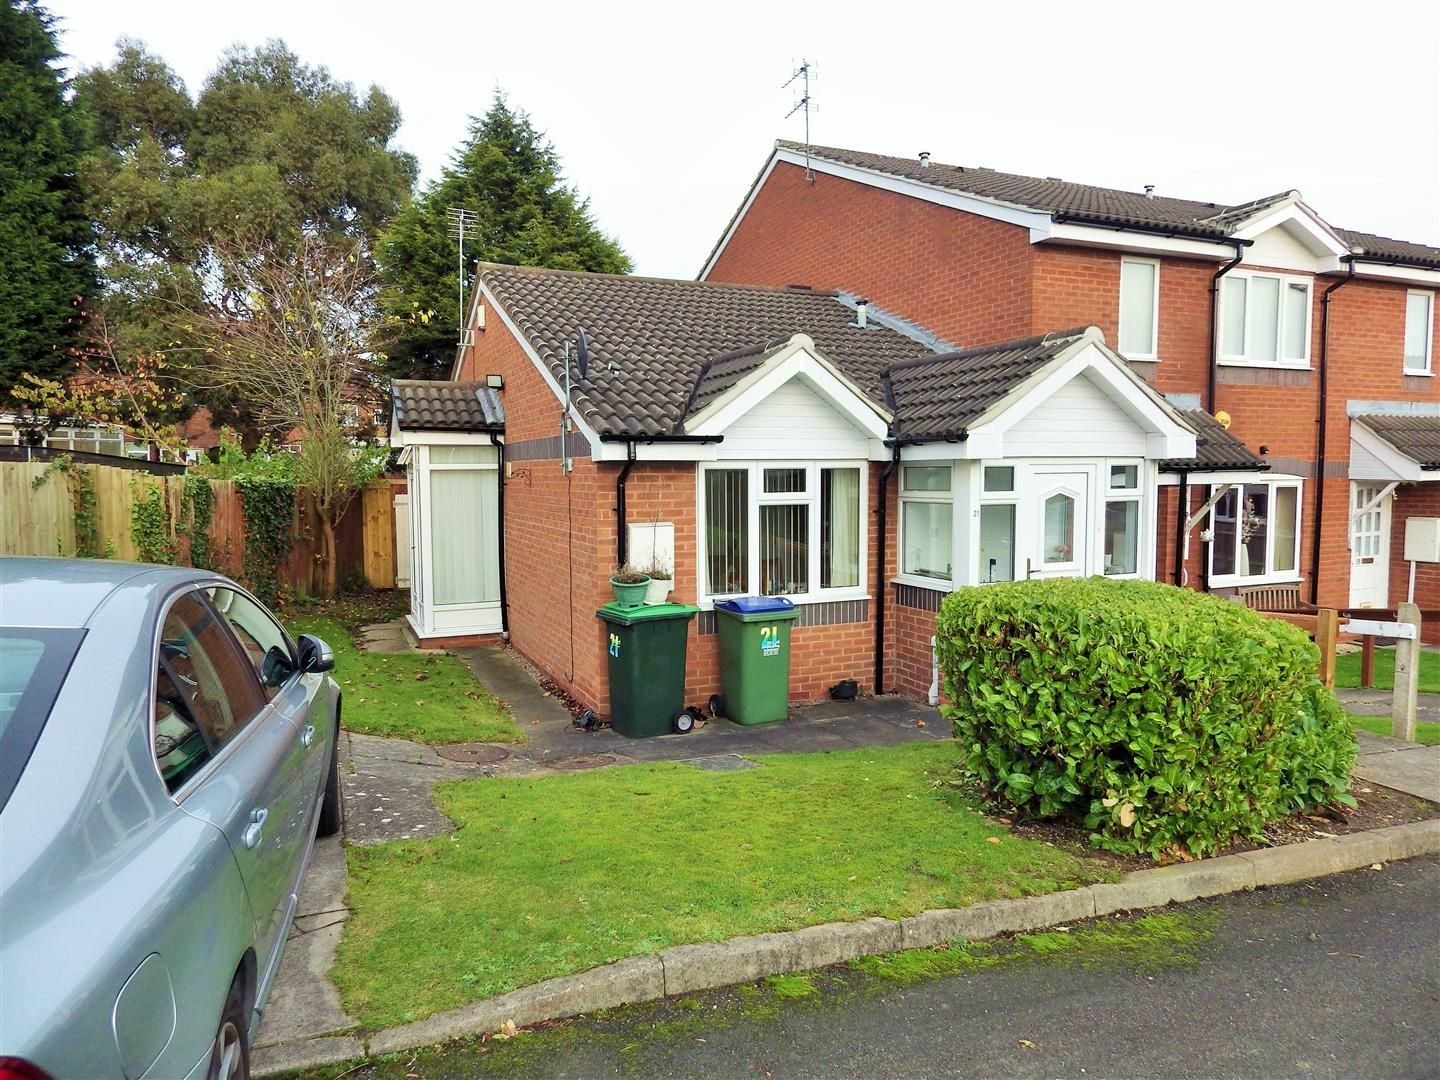 2 bed terraced-bungalow for sale, B69